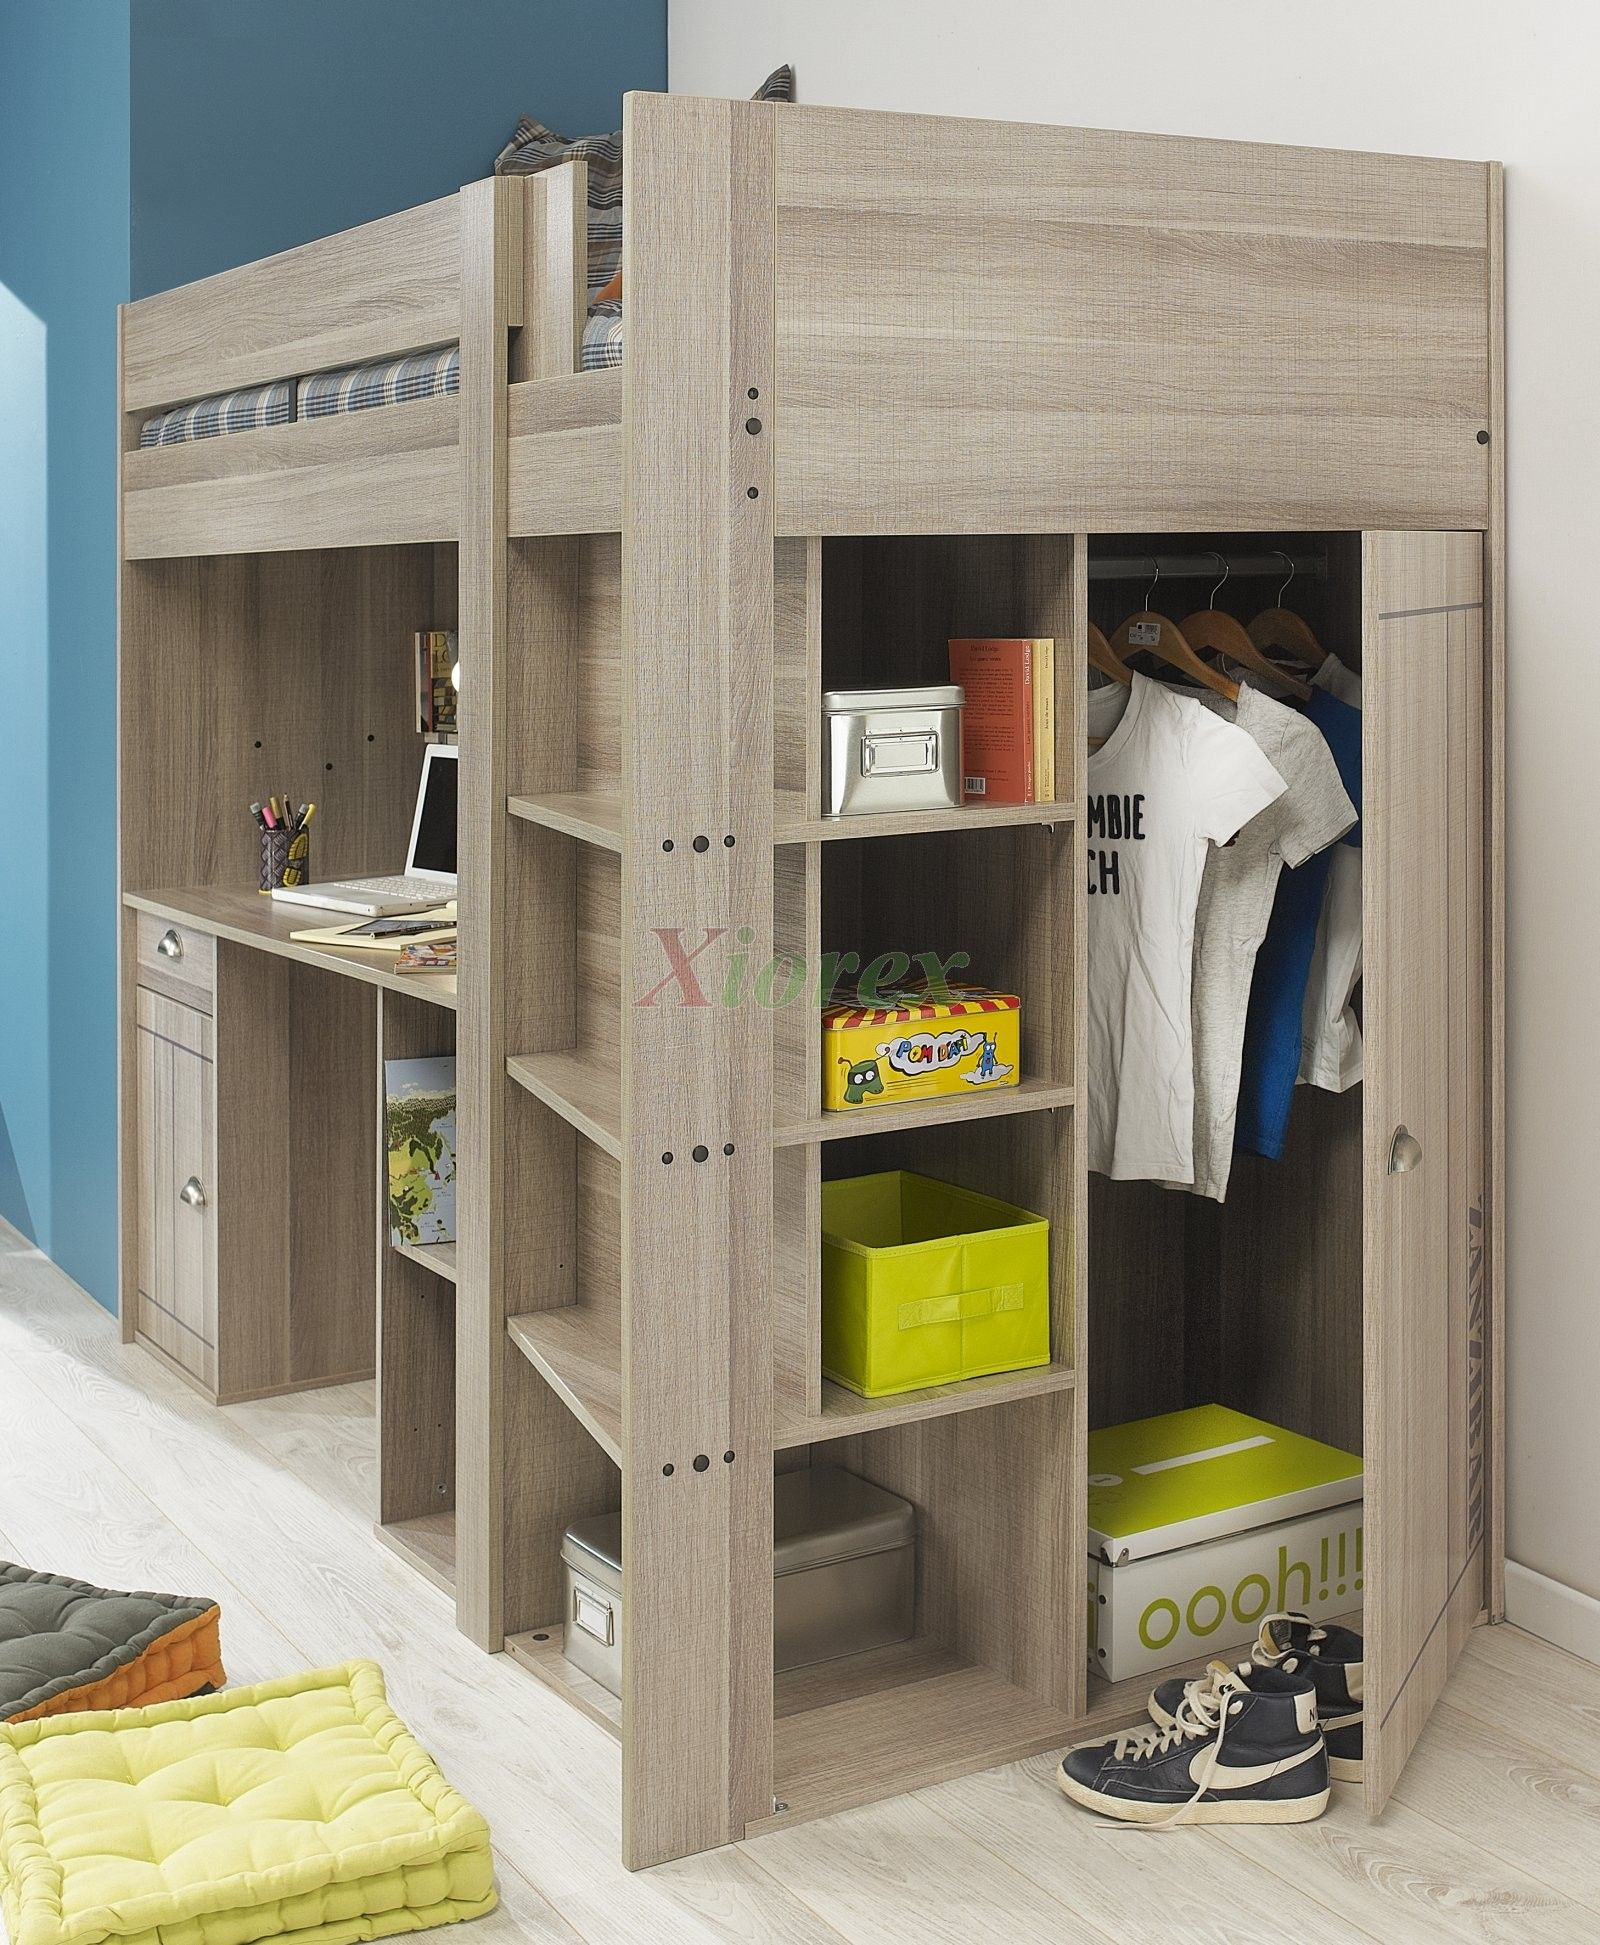 Modern loft bed with desk - Gami Largo Loft Beds For Teens Canada With Desk Closet Xiorex Gami Largo Teen